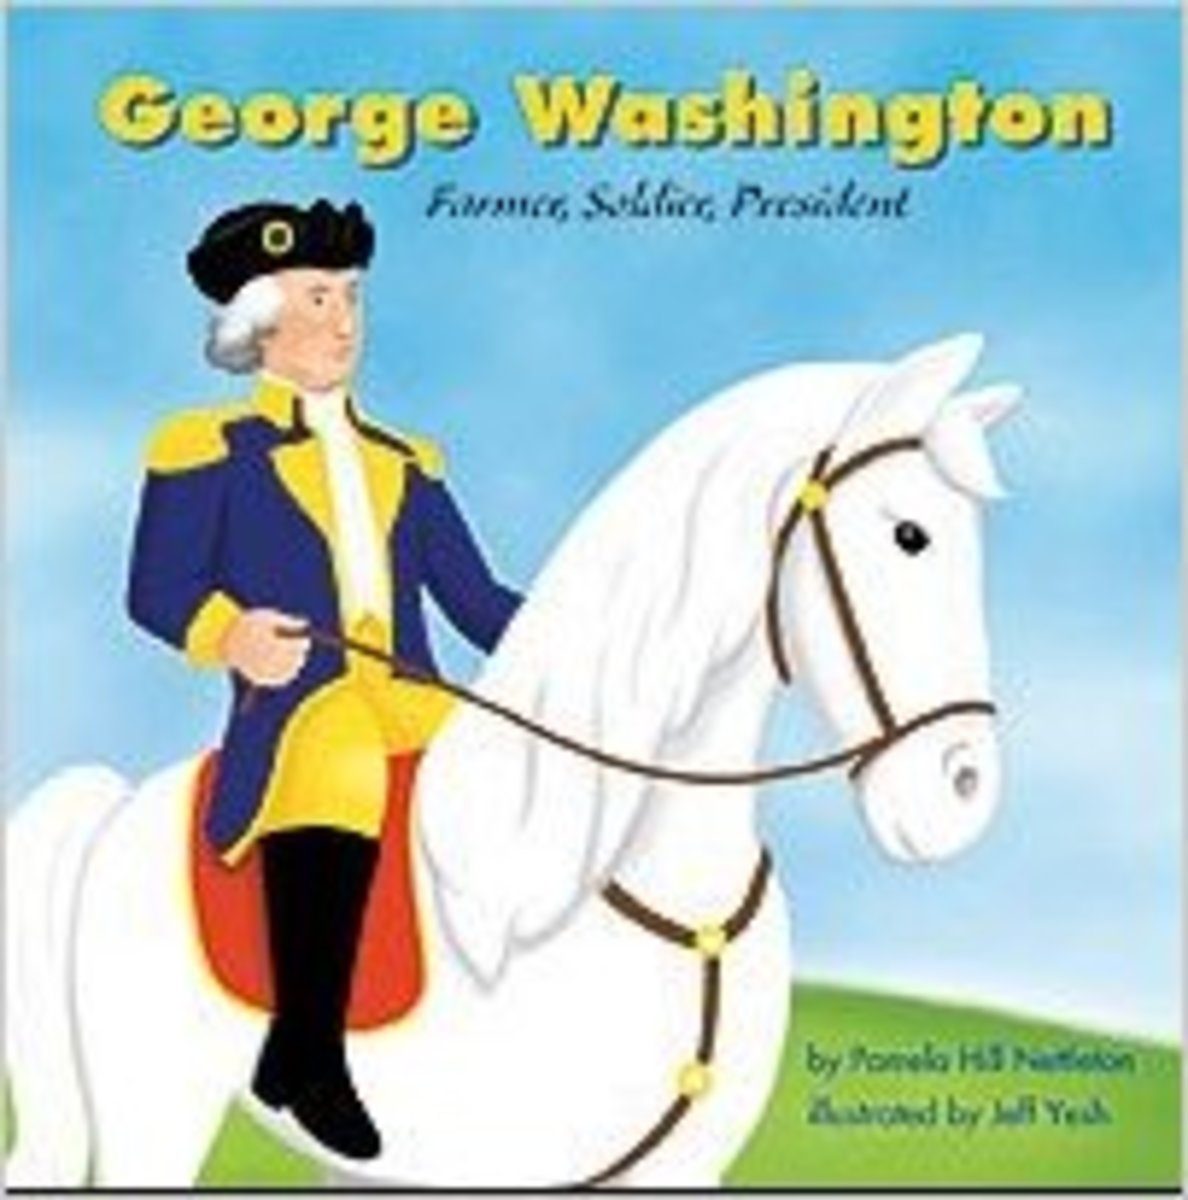 George Washington: Farmer, Soldier, President by Pamela Hill Nettleton